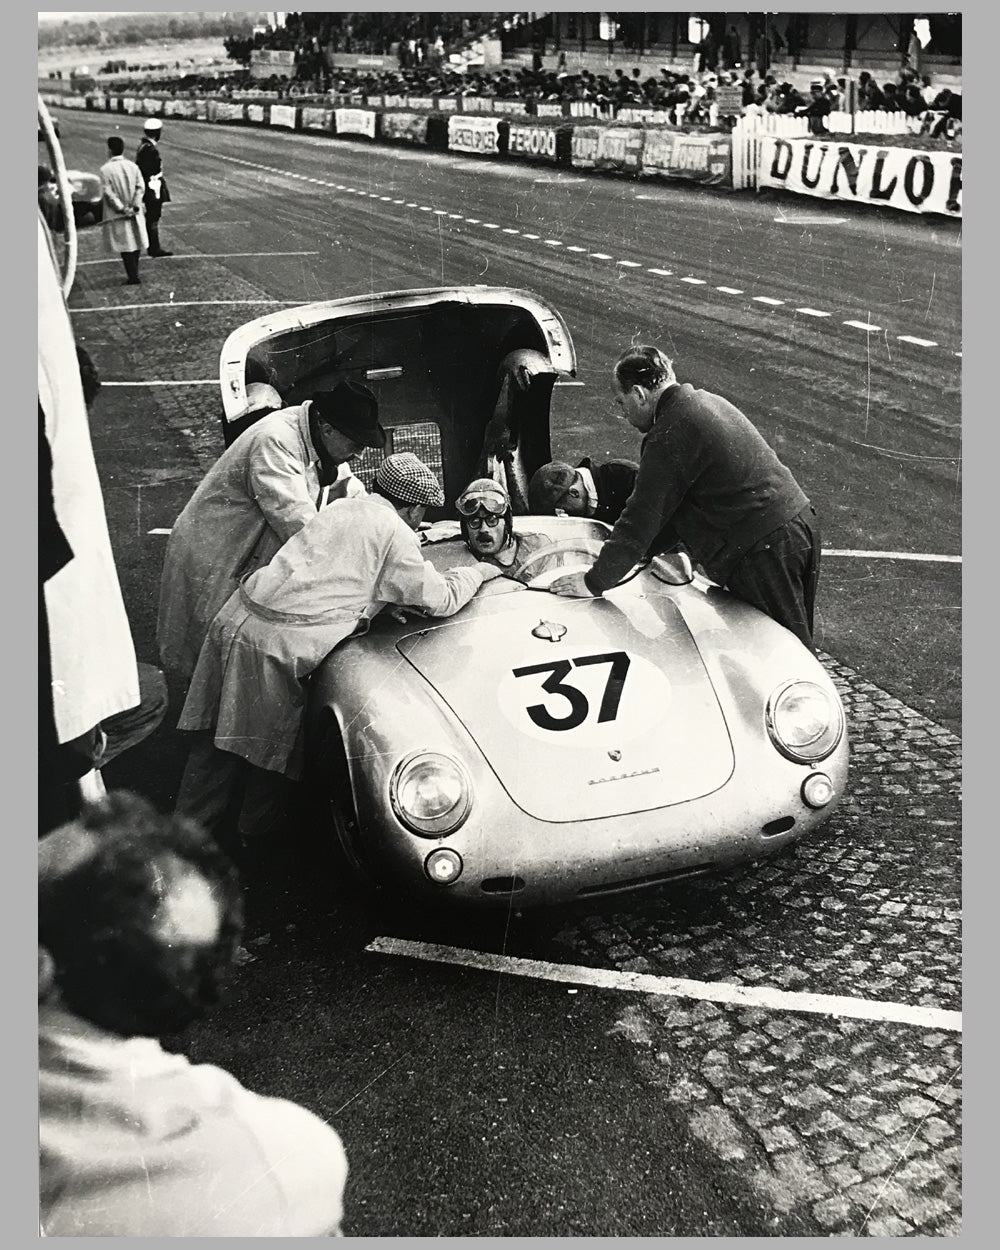 Porsche 550 at le Mans in 1955 b&w photograph